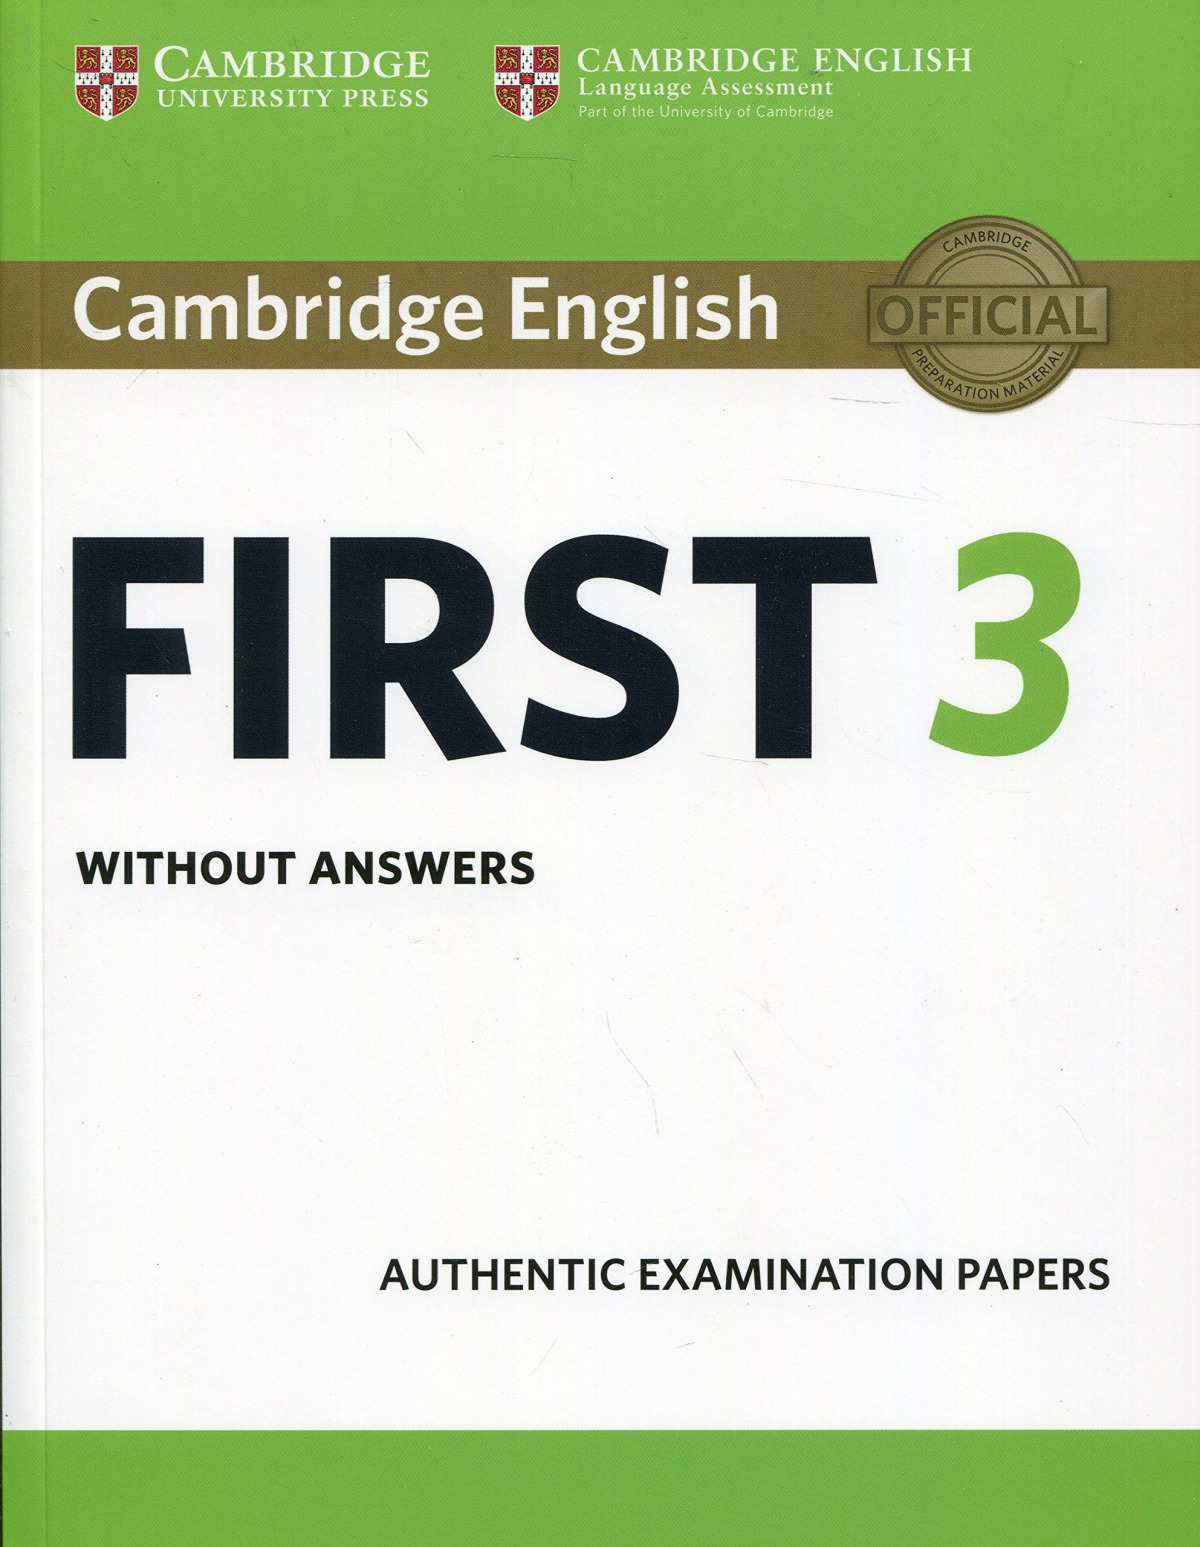 CAMBRIDGE ENGLISH FIRST 3 STUDENT´S BOOK (-ANSWERS)